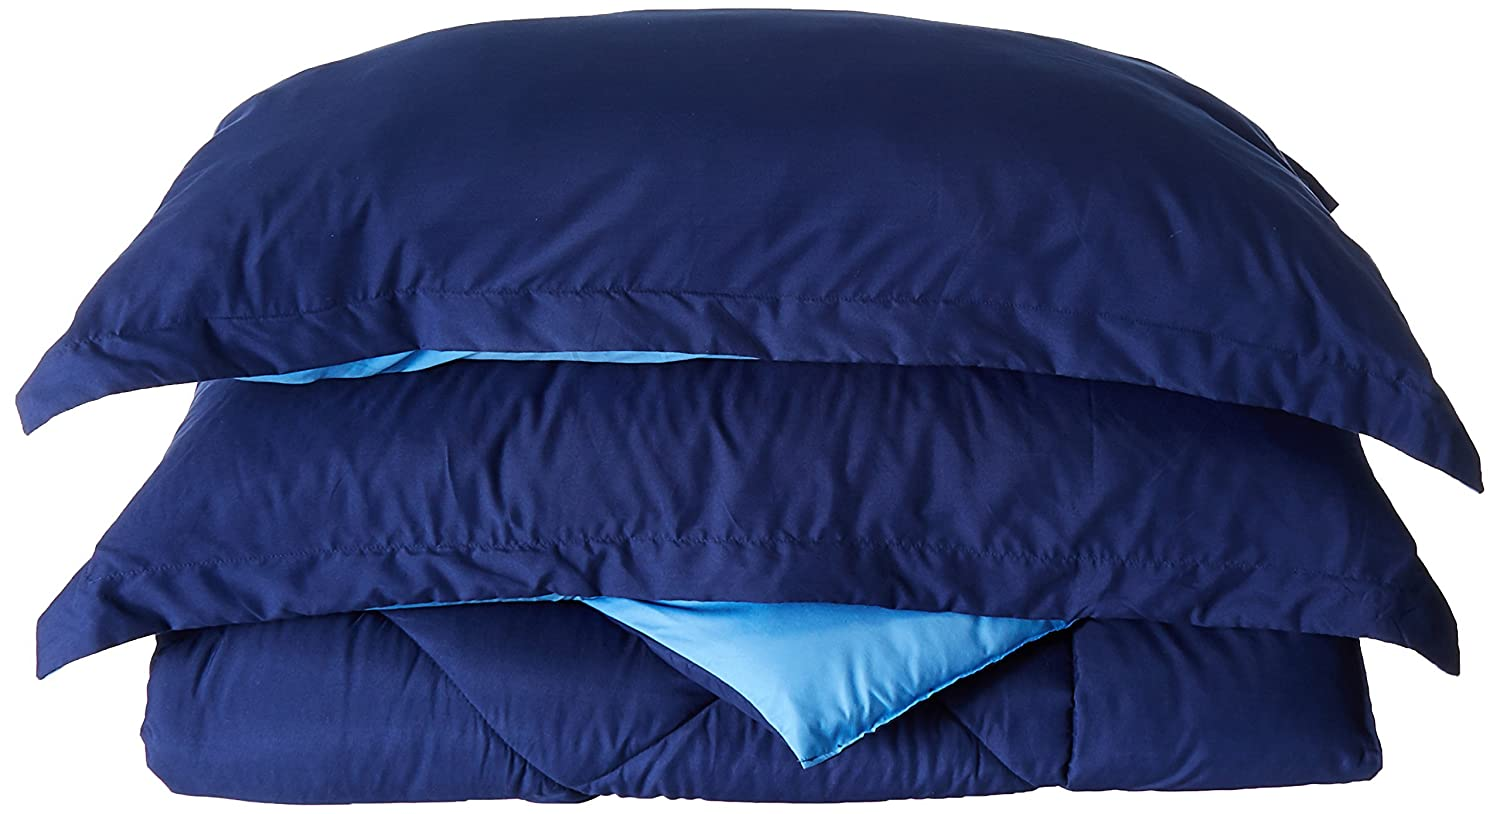 (King, Navy/Aqua) Elegant Comfort All Season Light Weight Down Alternative Reversible 3-Piece Comforter Set, King, Navy Blue/Light Blue B01DPZ8S9Q キング|ネイビー/アクア ネイビー/アクア キング